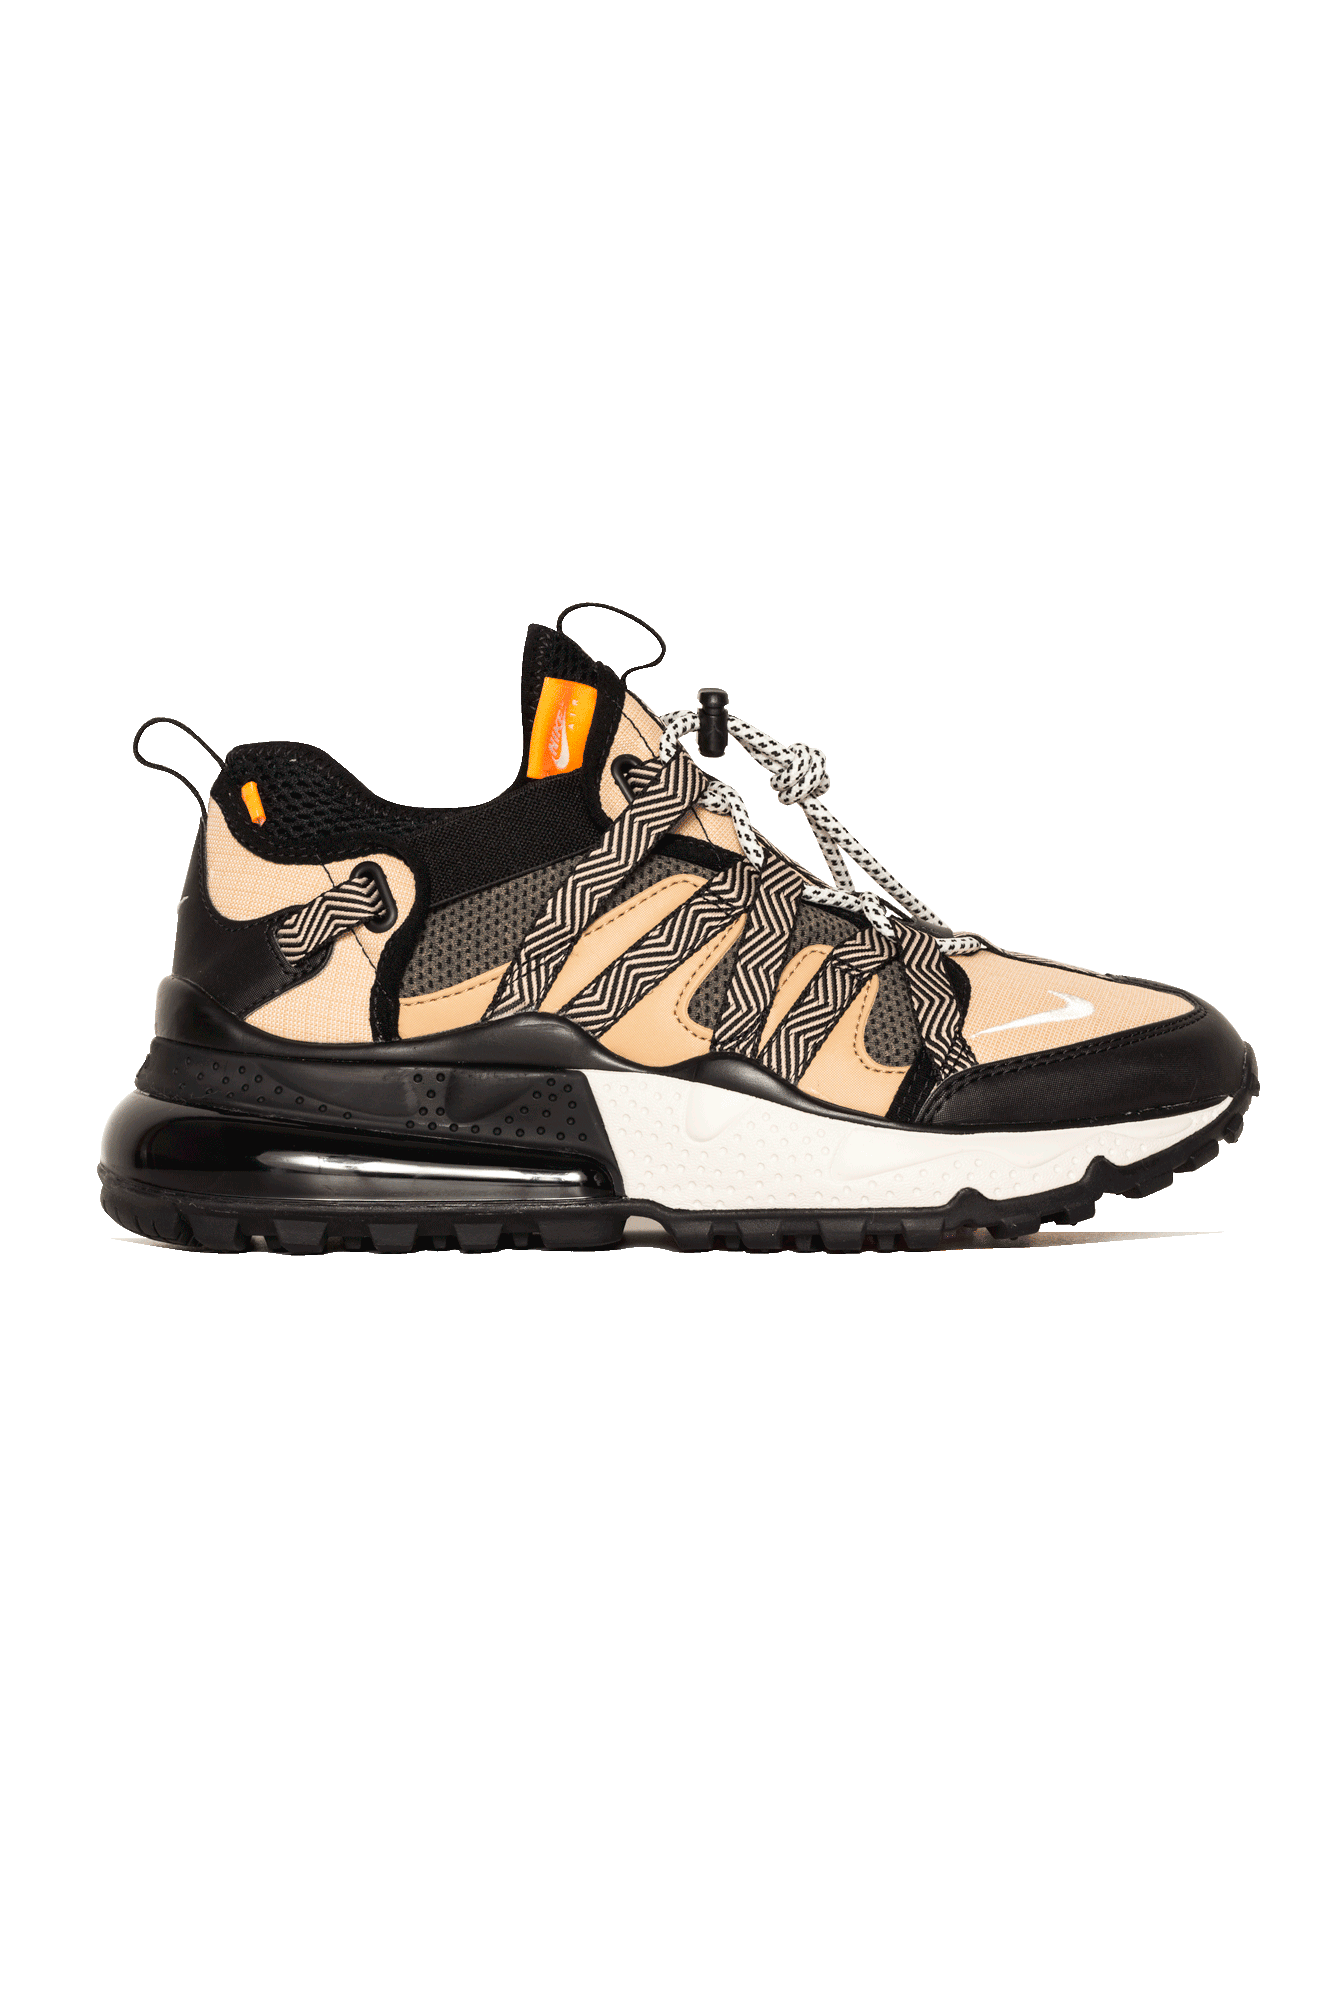 Nike Sneakers Air Max 270 Bowfin Brown AJ7200 #000#001#11 One Block Down